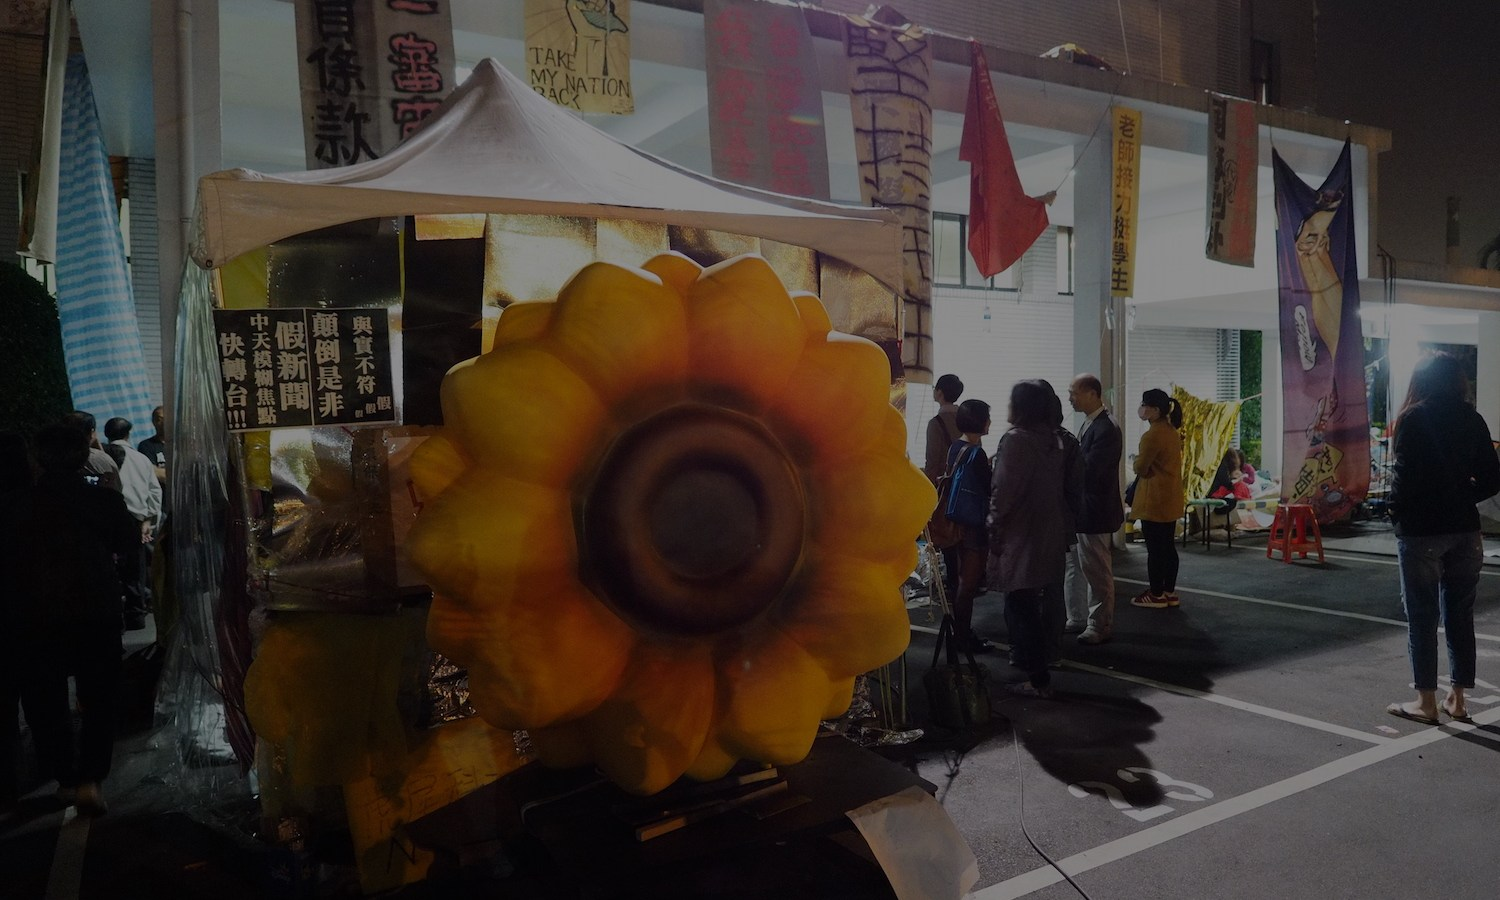 Why Did The Sunflower Movement Rupture The Everyday For Many Participants?